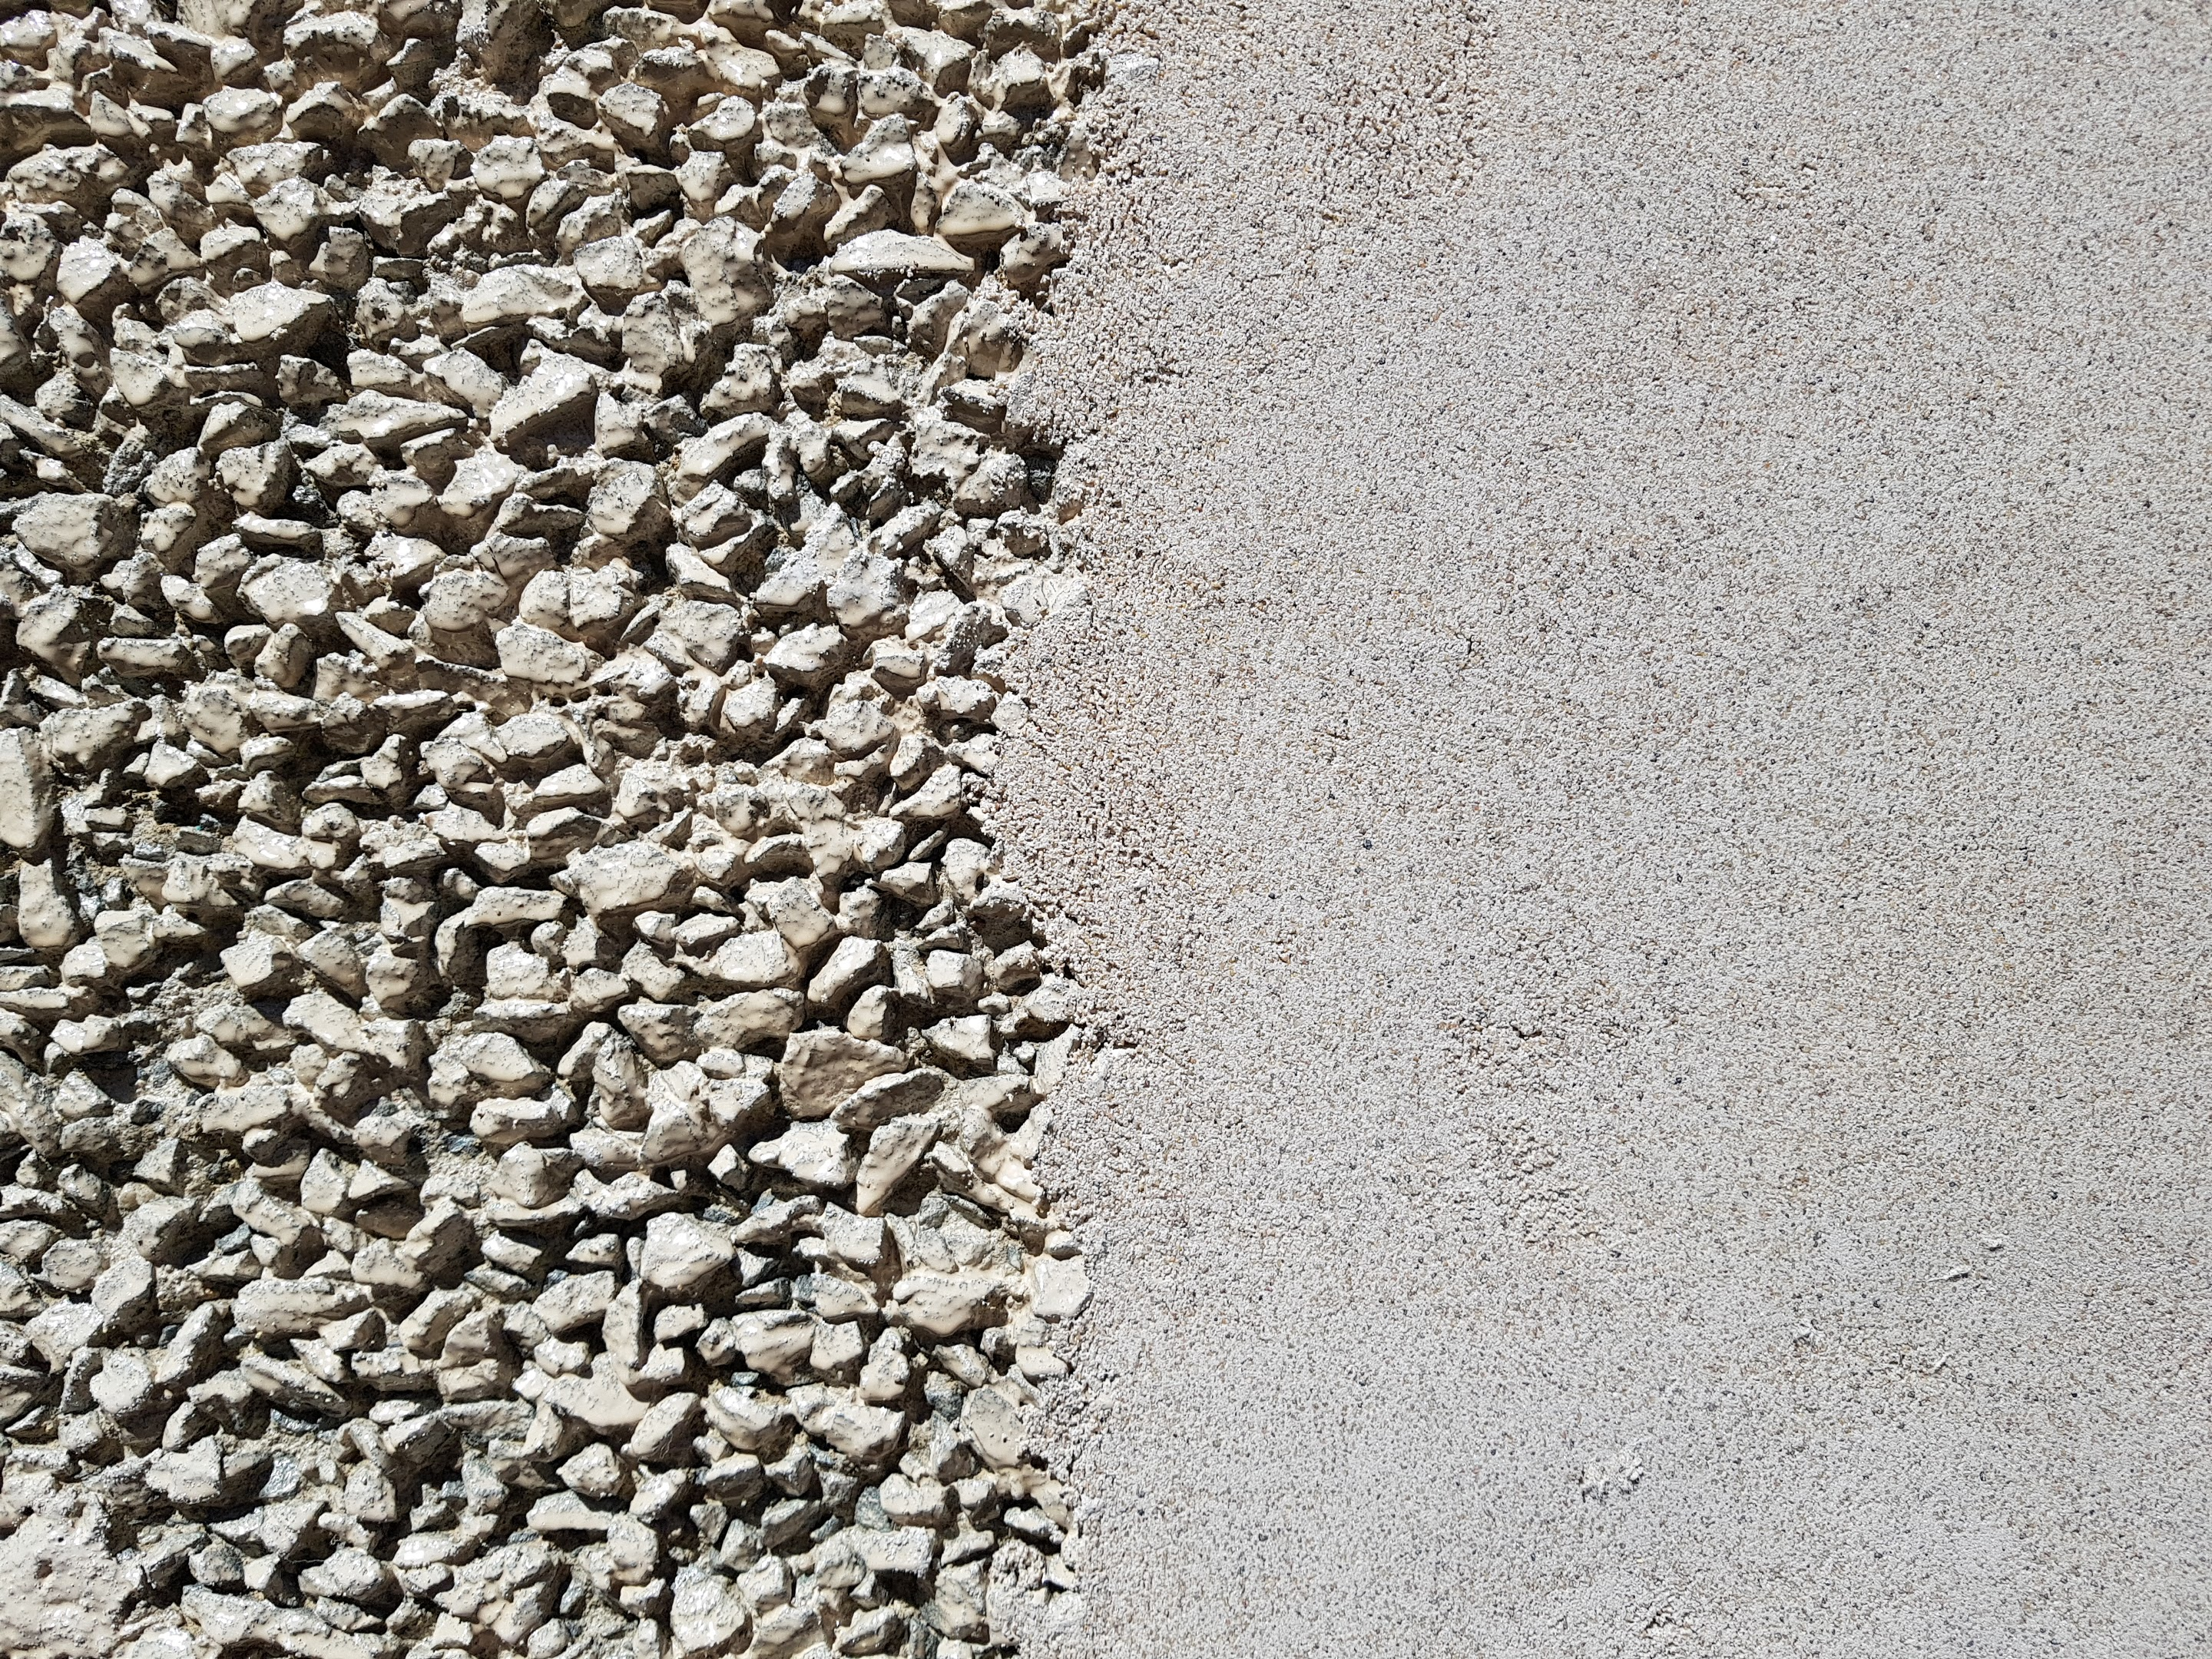 WTP Exposed Aggregate resurfaced with Civilox-18 and Renderfill